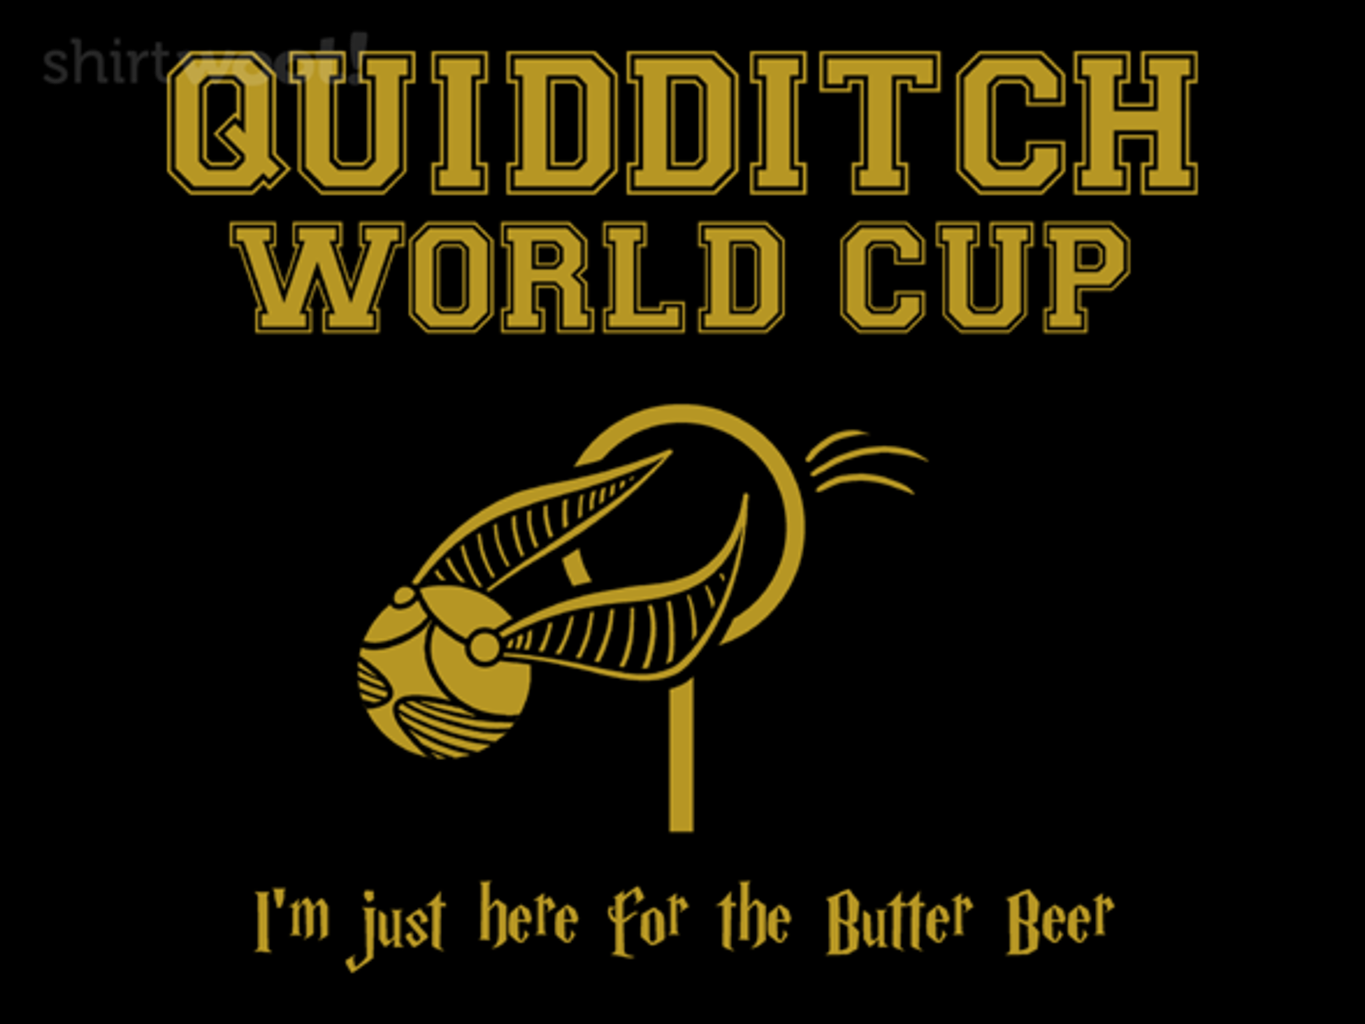 Woot!: Here for the Butter Beer